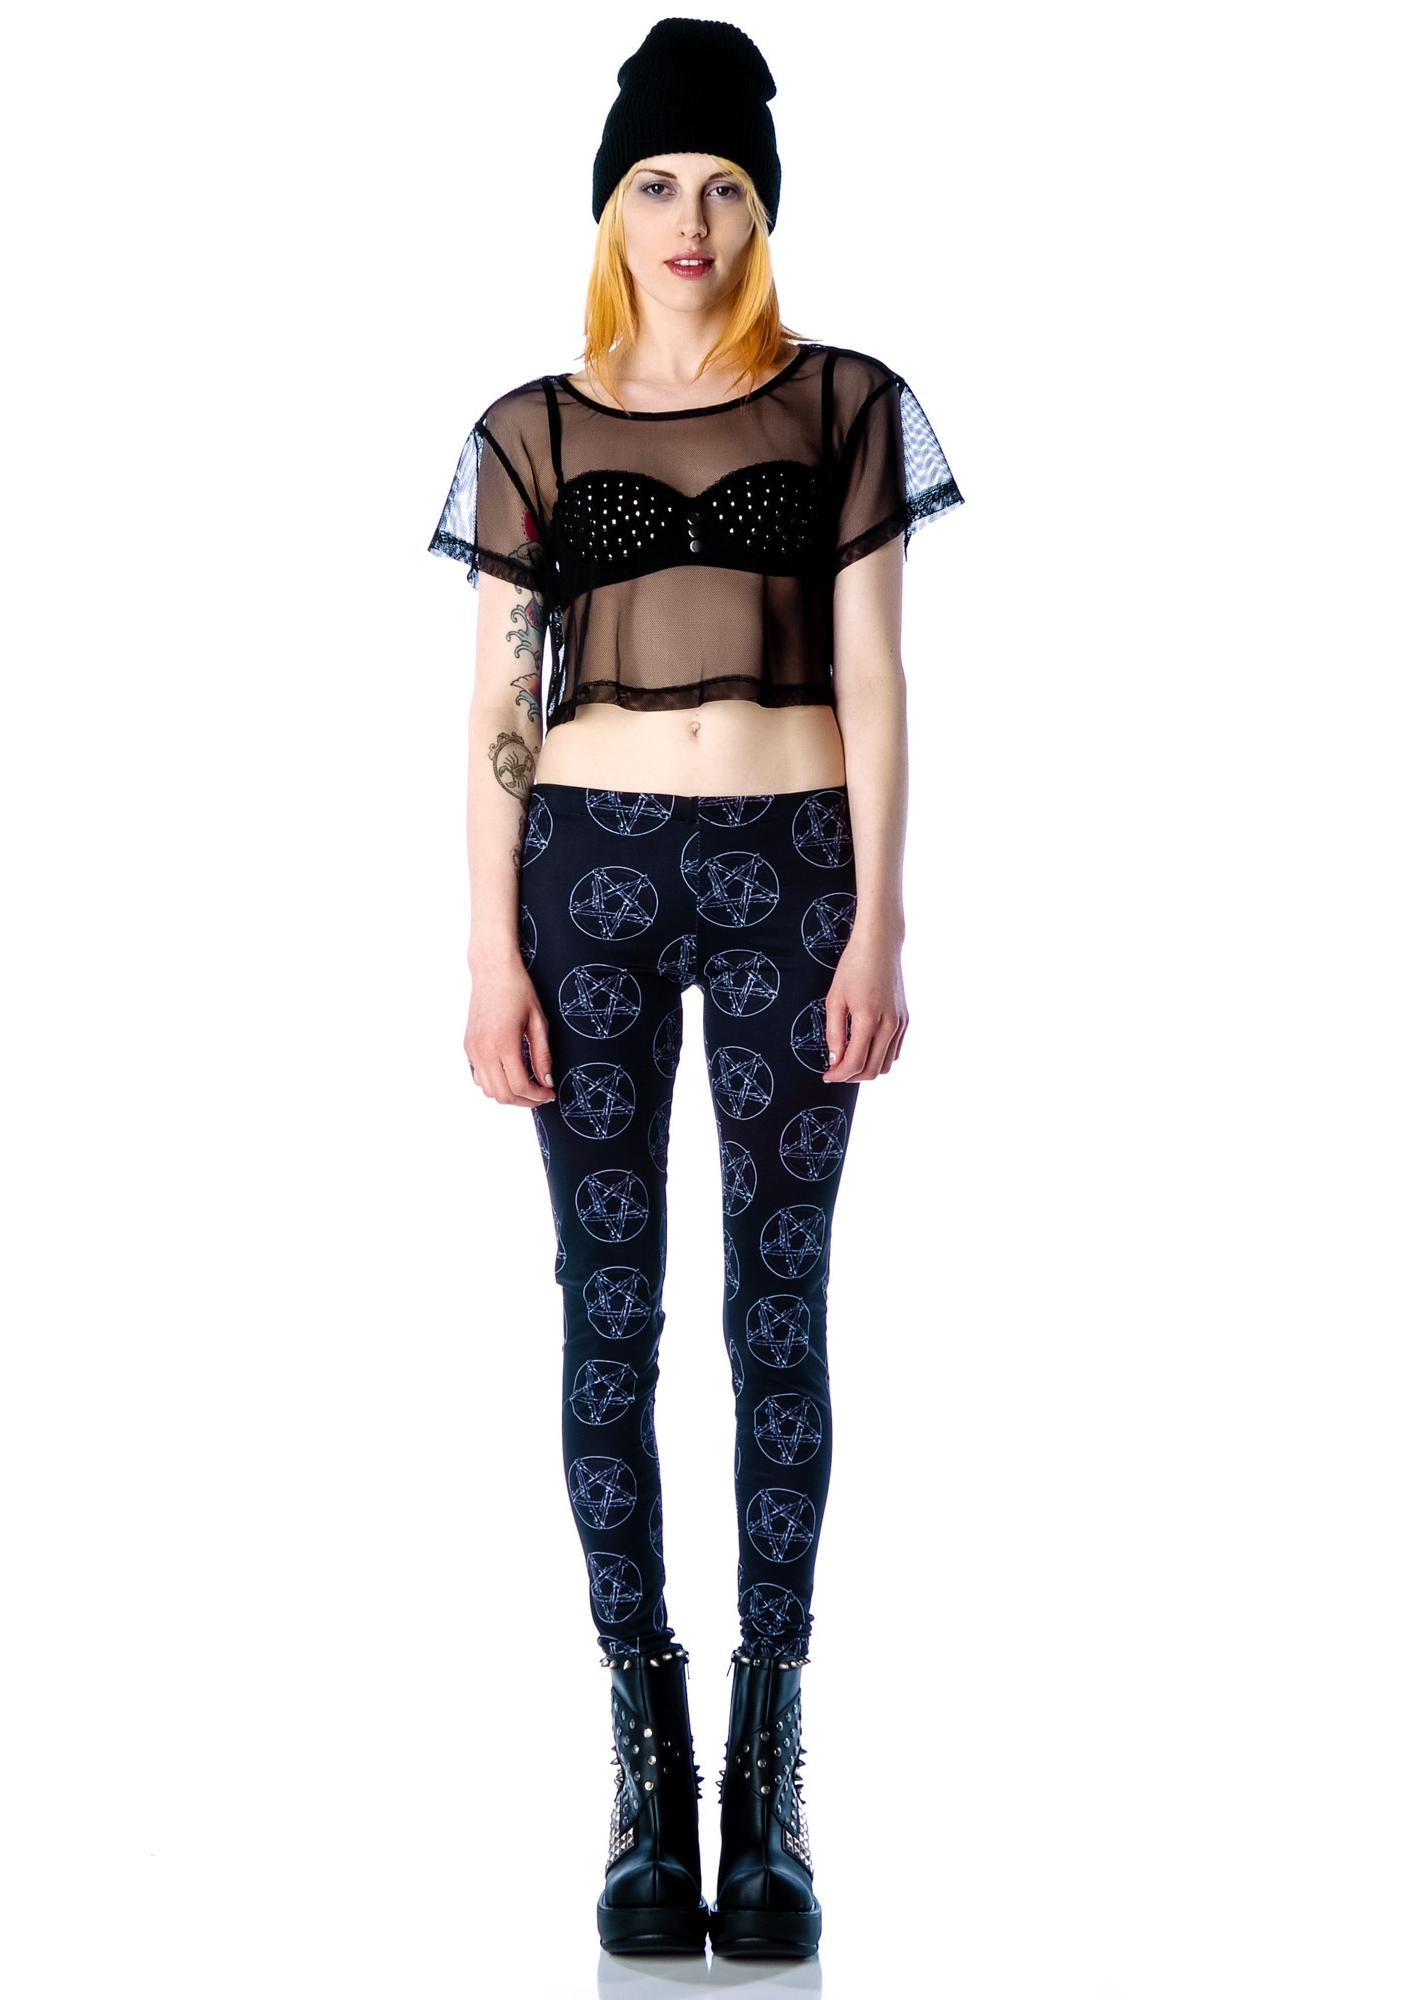 Lip Service Netting Crop Top